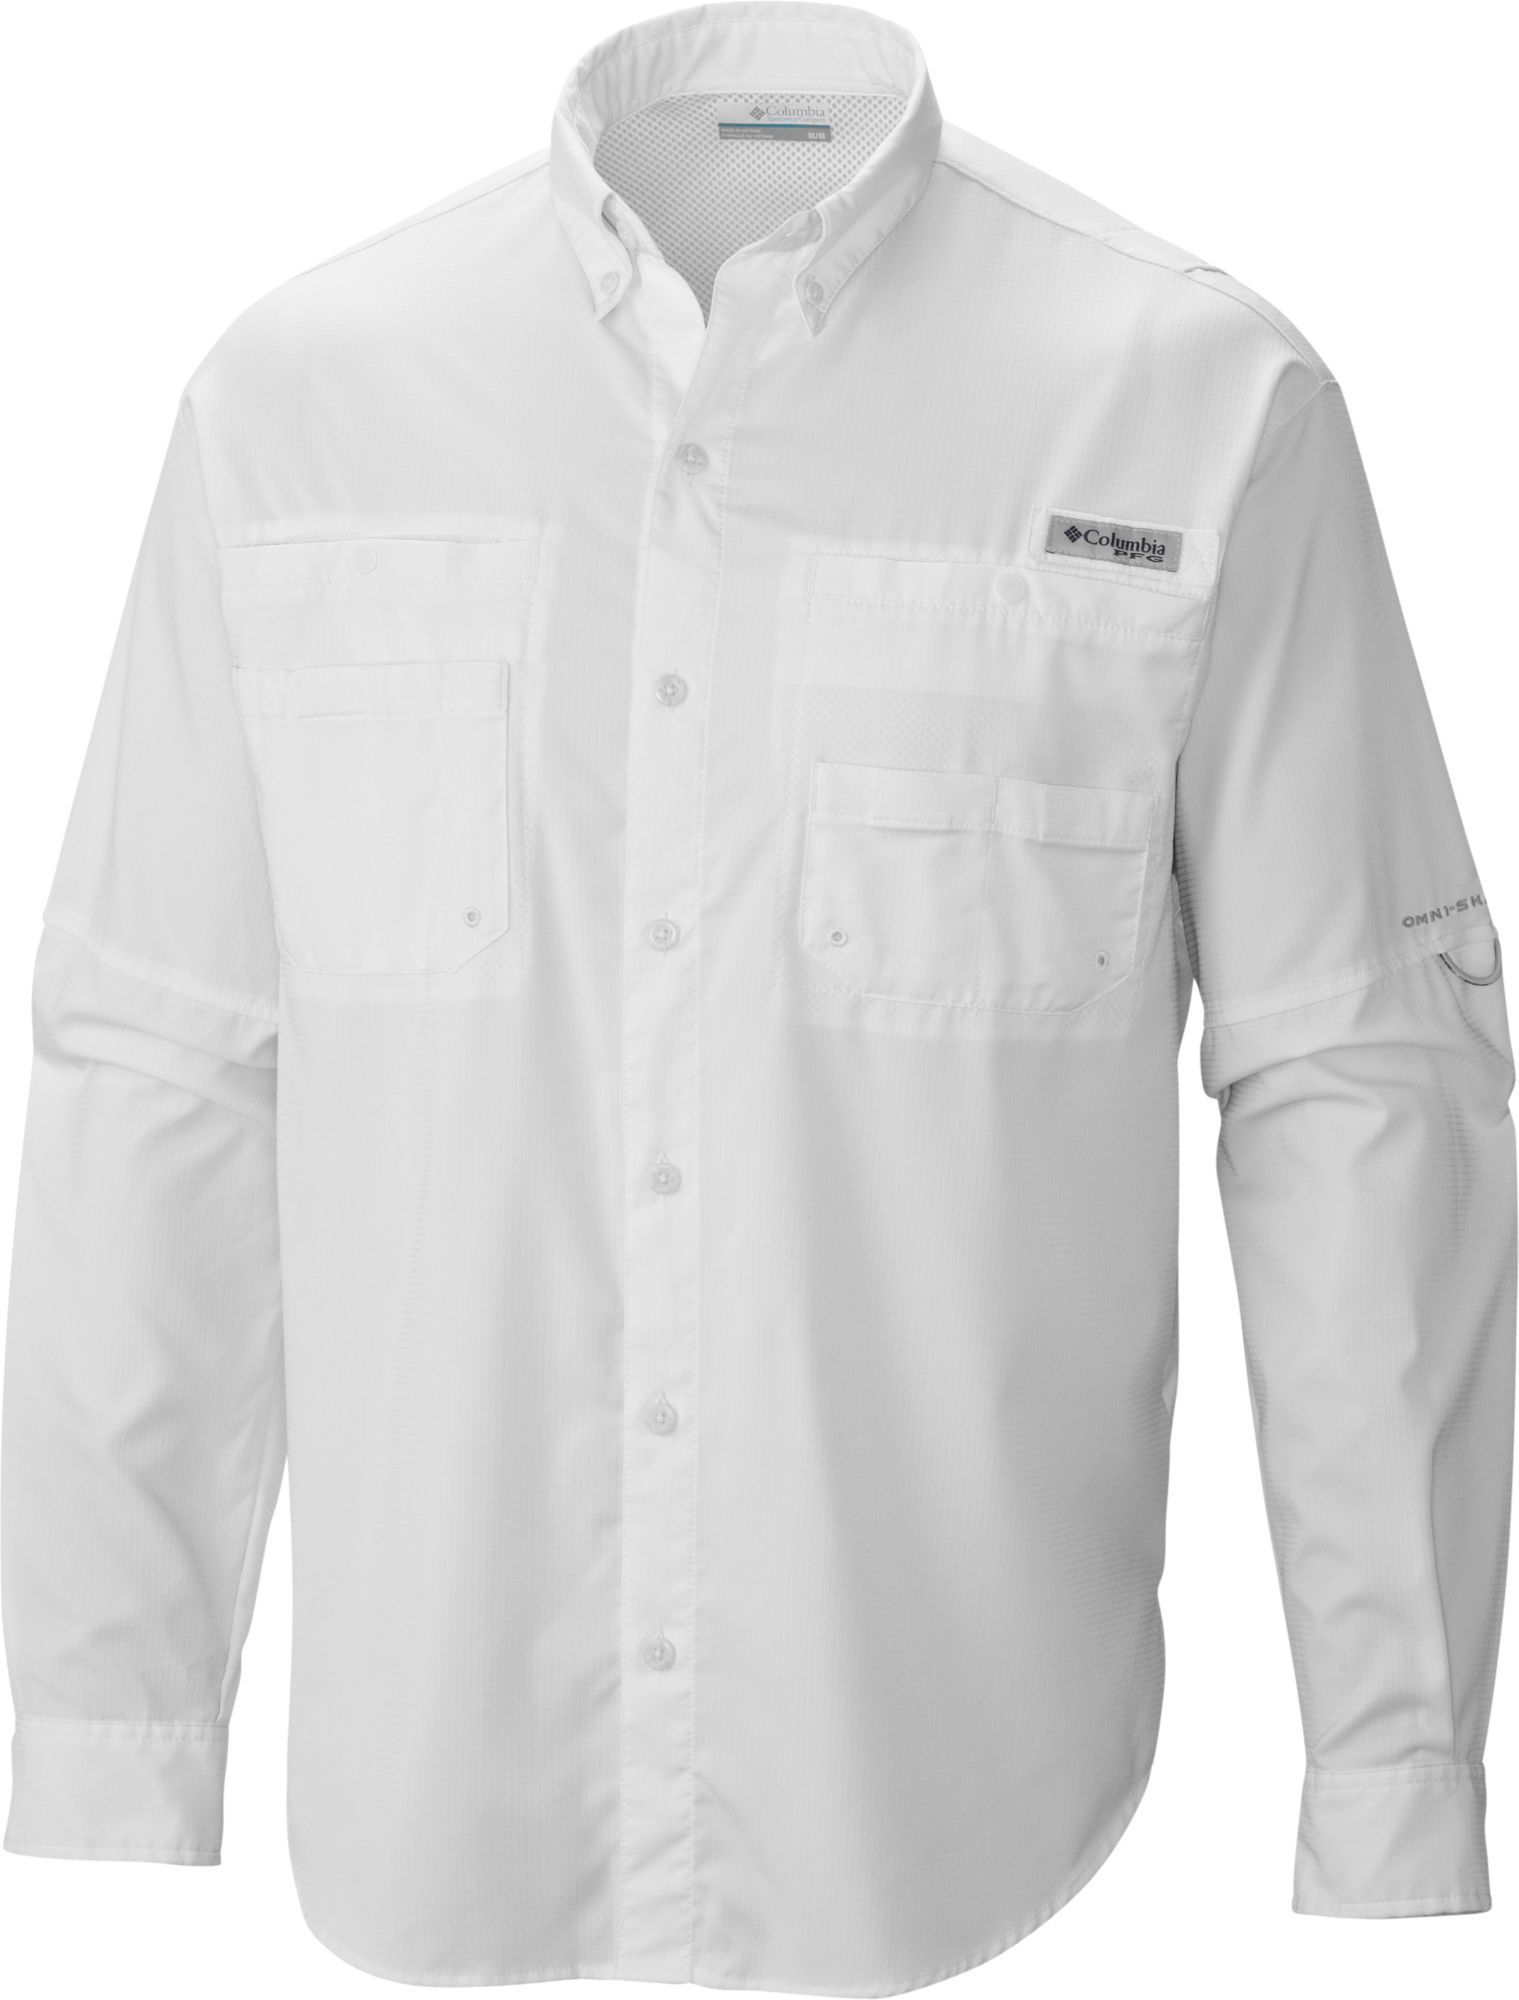 c3951449f63 Columbia Men's PFG Tamiami II Long Sleeve Shirt, Size: Small, White ...